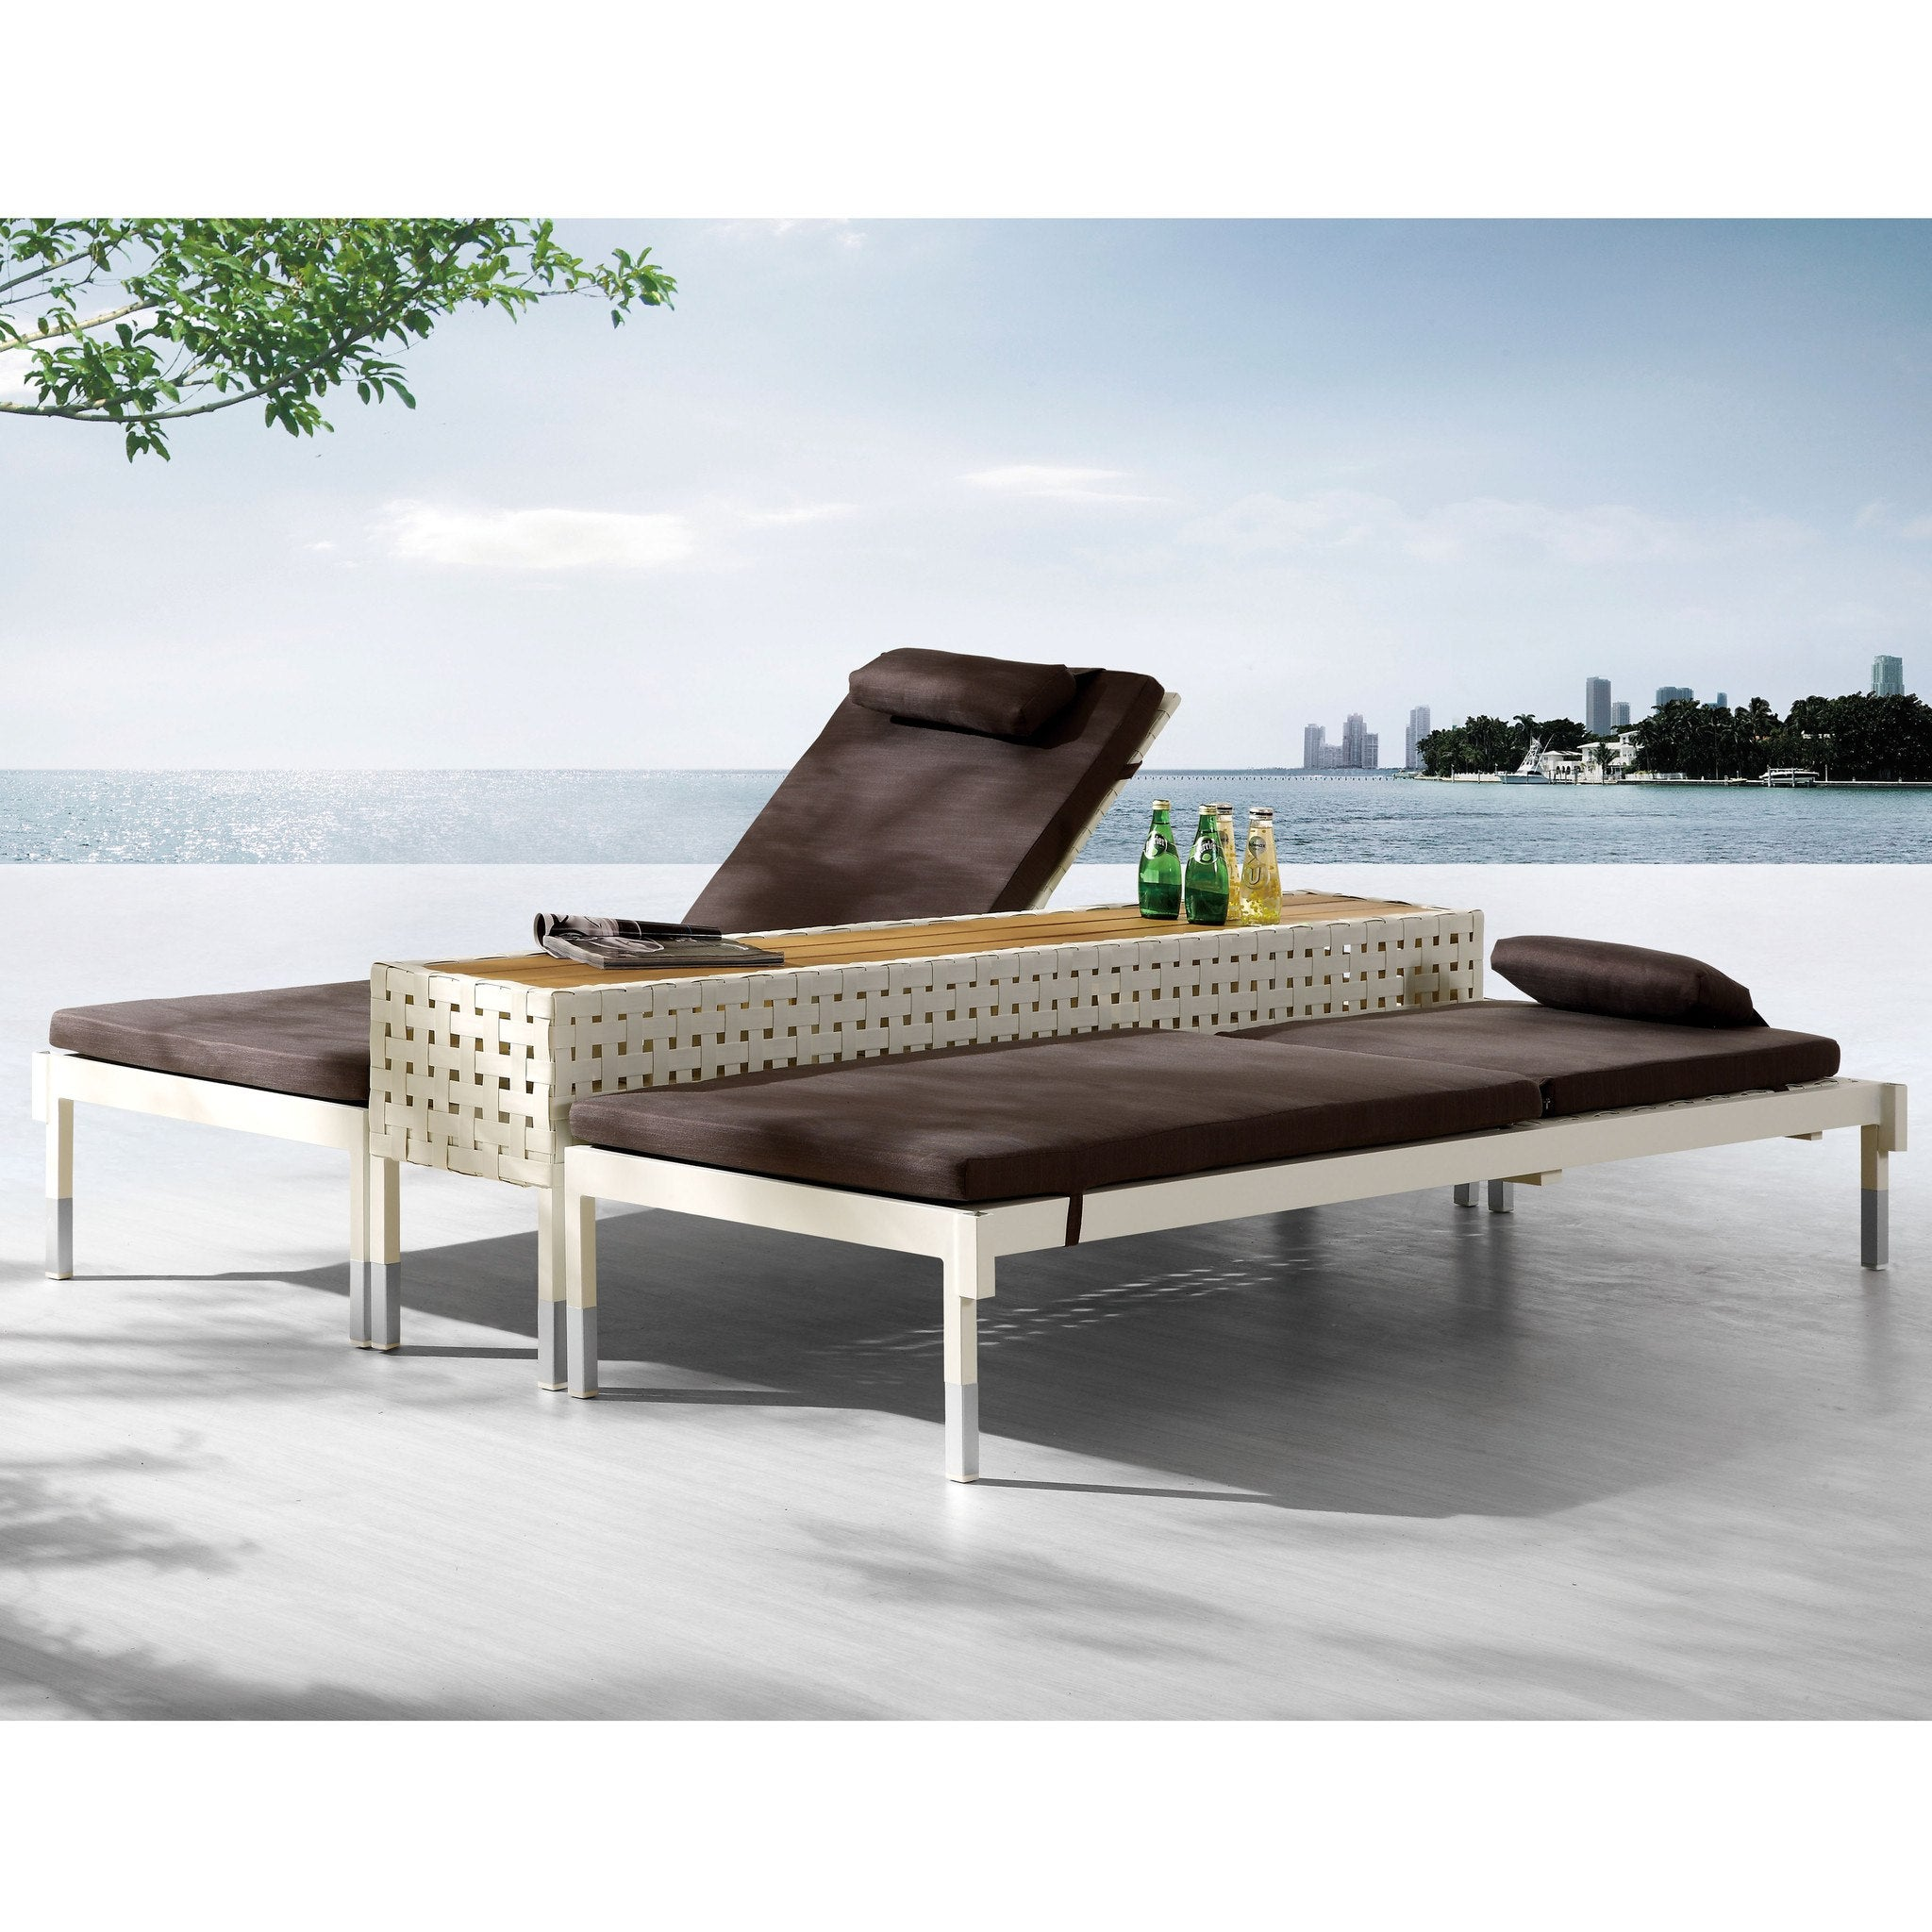 Contract quality outdoor chaise lounge | TB Outdoor Design | Outdoor on outdoor settee, outdoor futon, outdoor bench lounge, outdoor ottoman, outdoor canopy lounge, french lounge, outdoor furniture lounge, outdoor bar lounge, minimalist outdoor lounge, outdoor swing lounge, rooftop lounge, chez lounge, outdoor lounger, outdoor chair lounge, outdoor bed lounge, outdoor cushion lounge, crystal lounge, outdoor rocker, outdoor modern lounge, outdoor dining lounge,